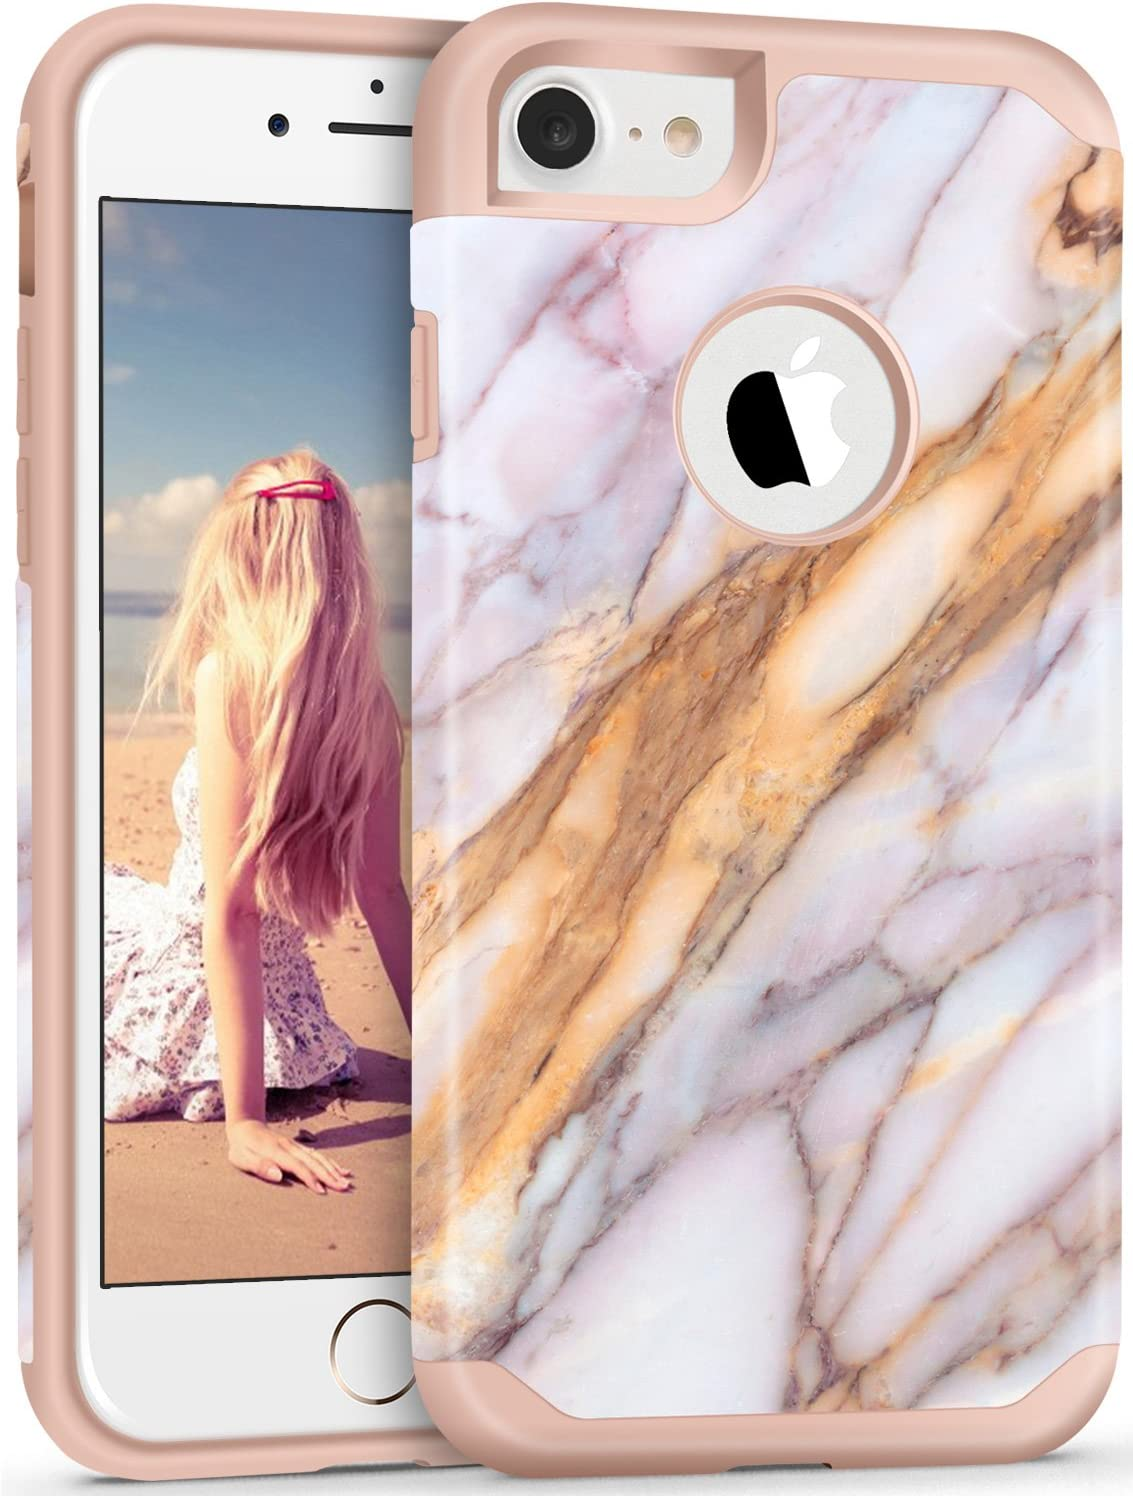 iPhone 7 Case,Imikoko iPhone 7 Marble Case Protective Shockproof Soft Silicone Hardshell Heavy Duty Slim Thin White Cute Case Cover for iPhone 7 Pink